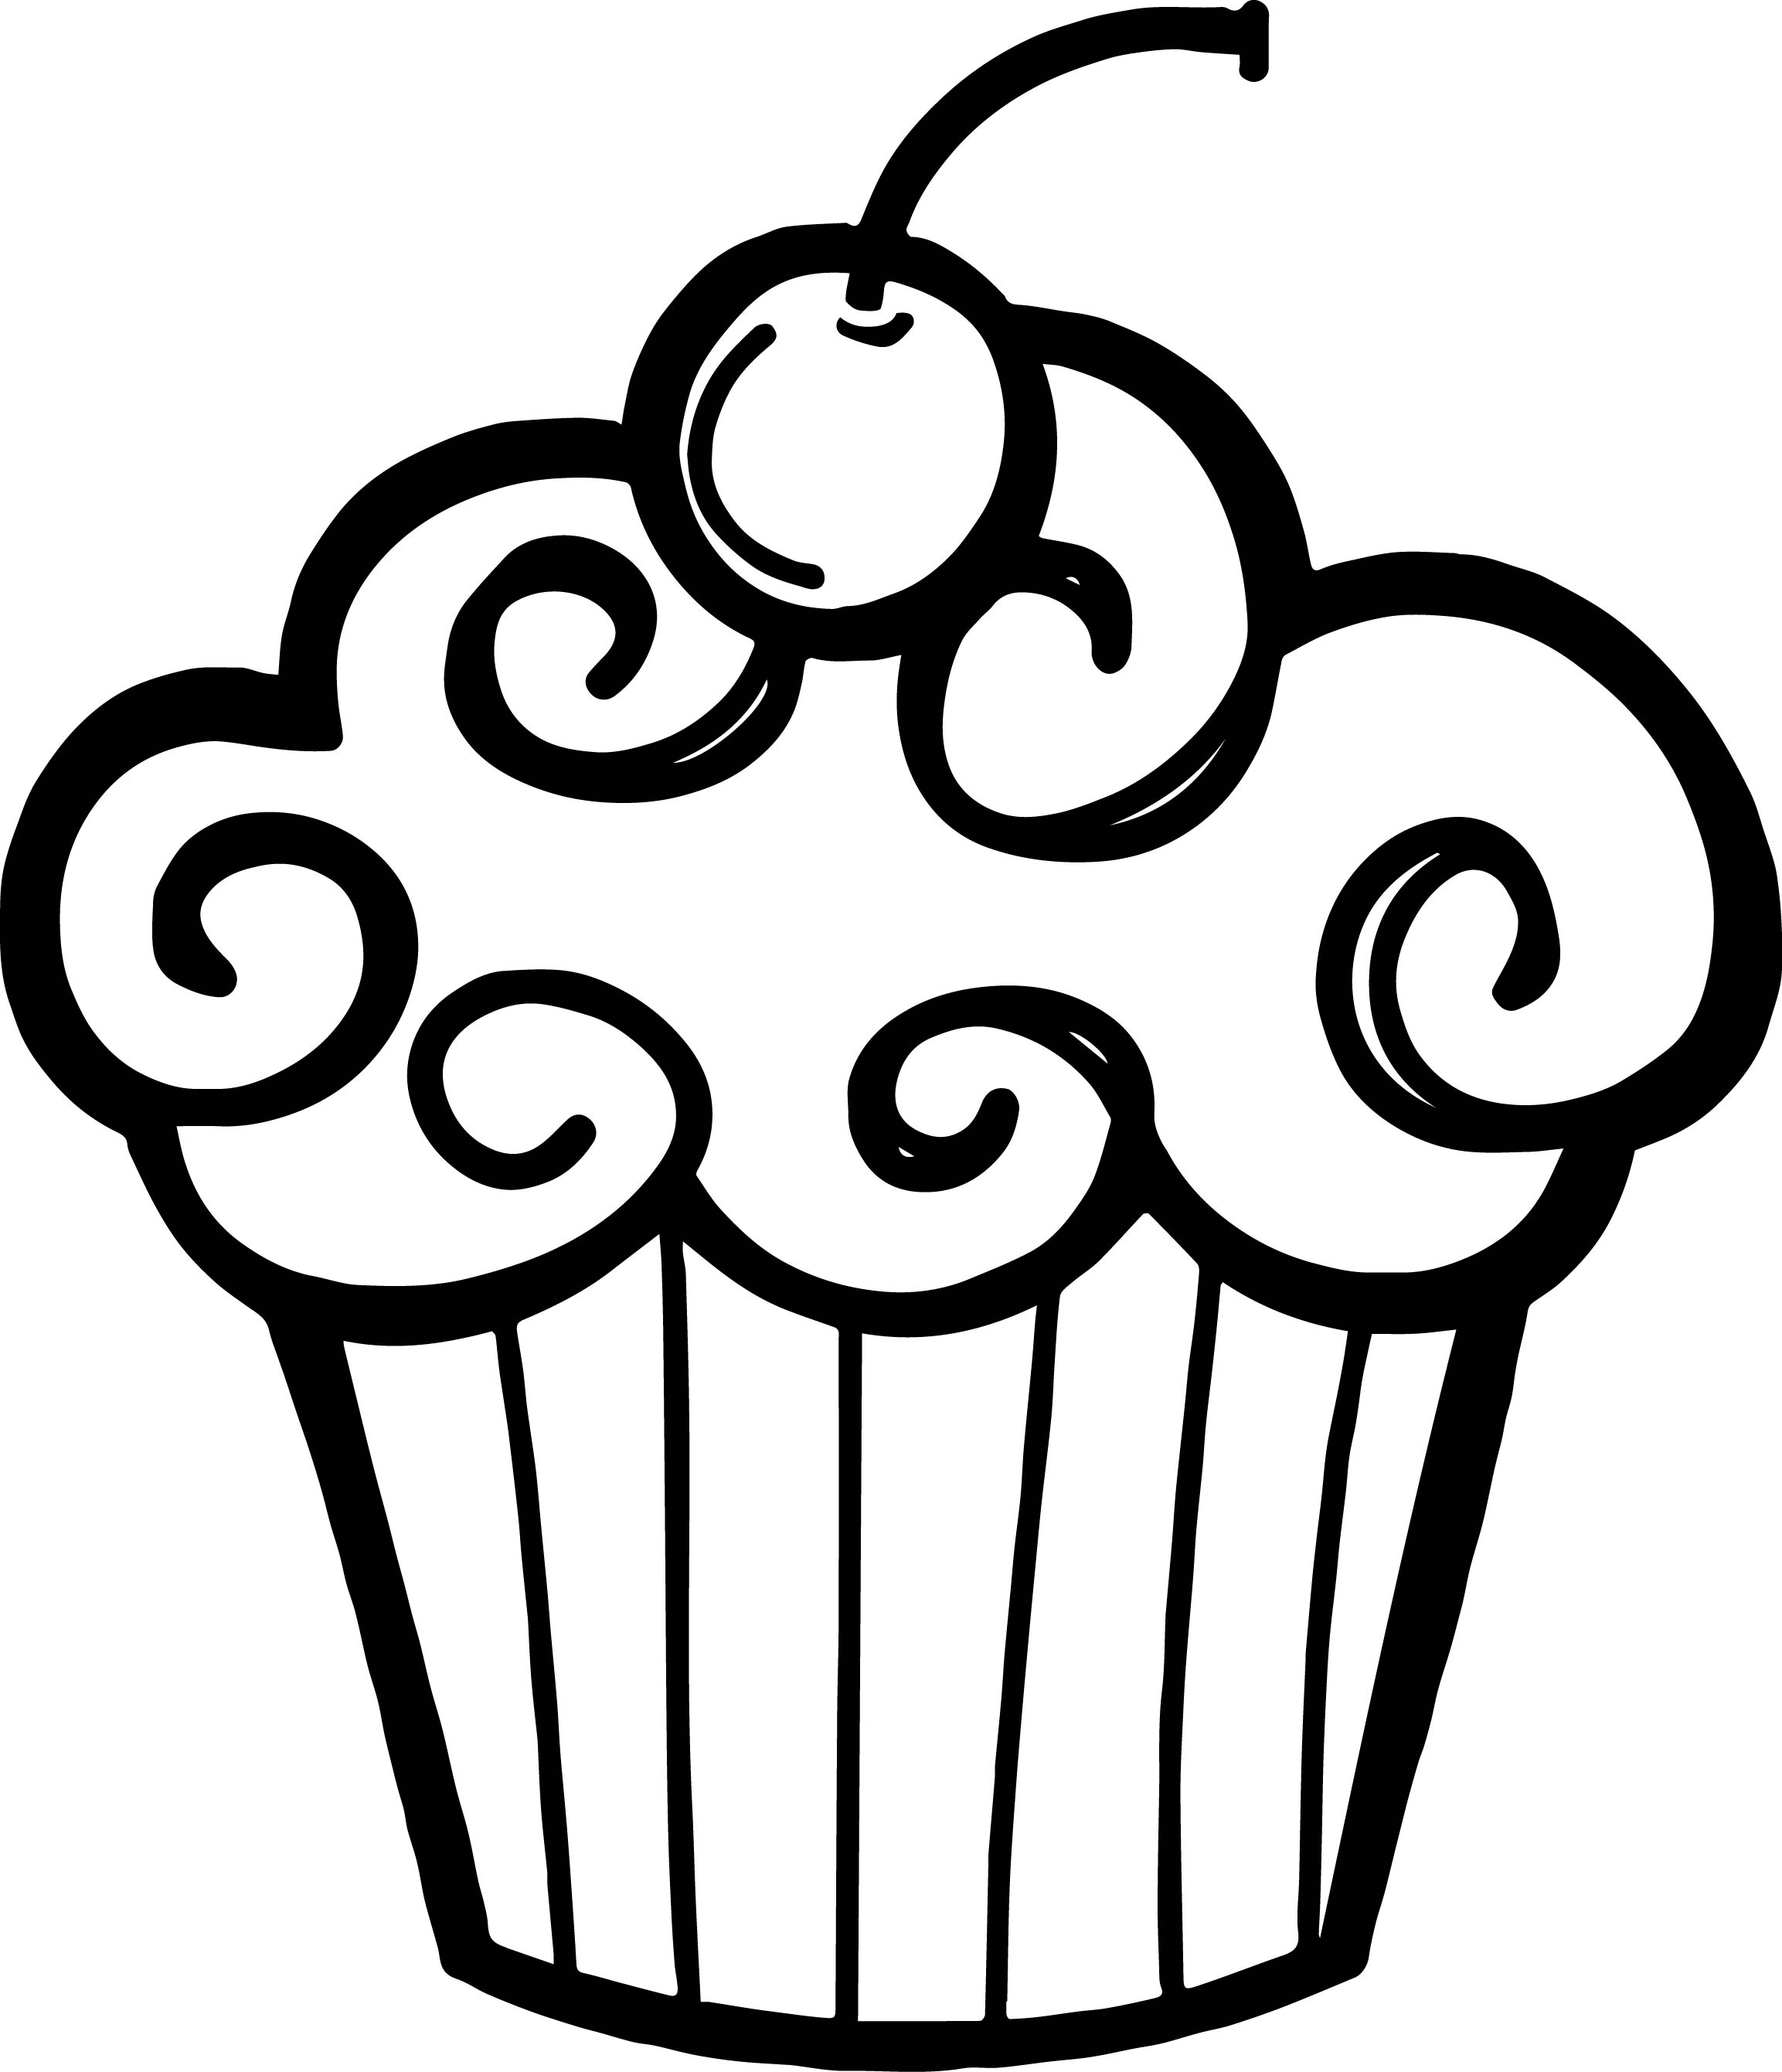 2306x2681 Cupcake With Candle Clipart Black And White